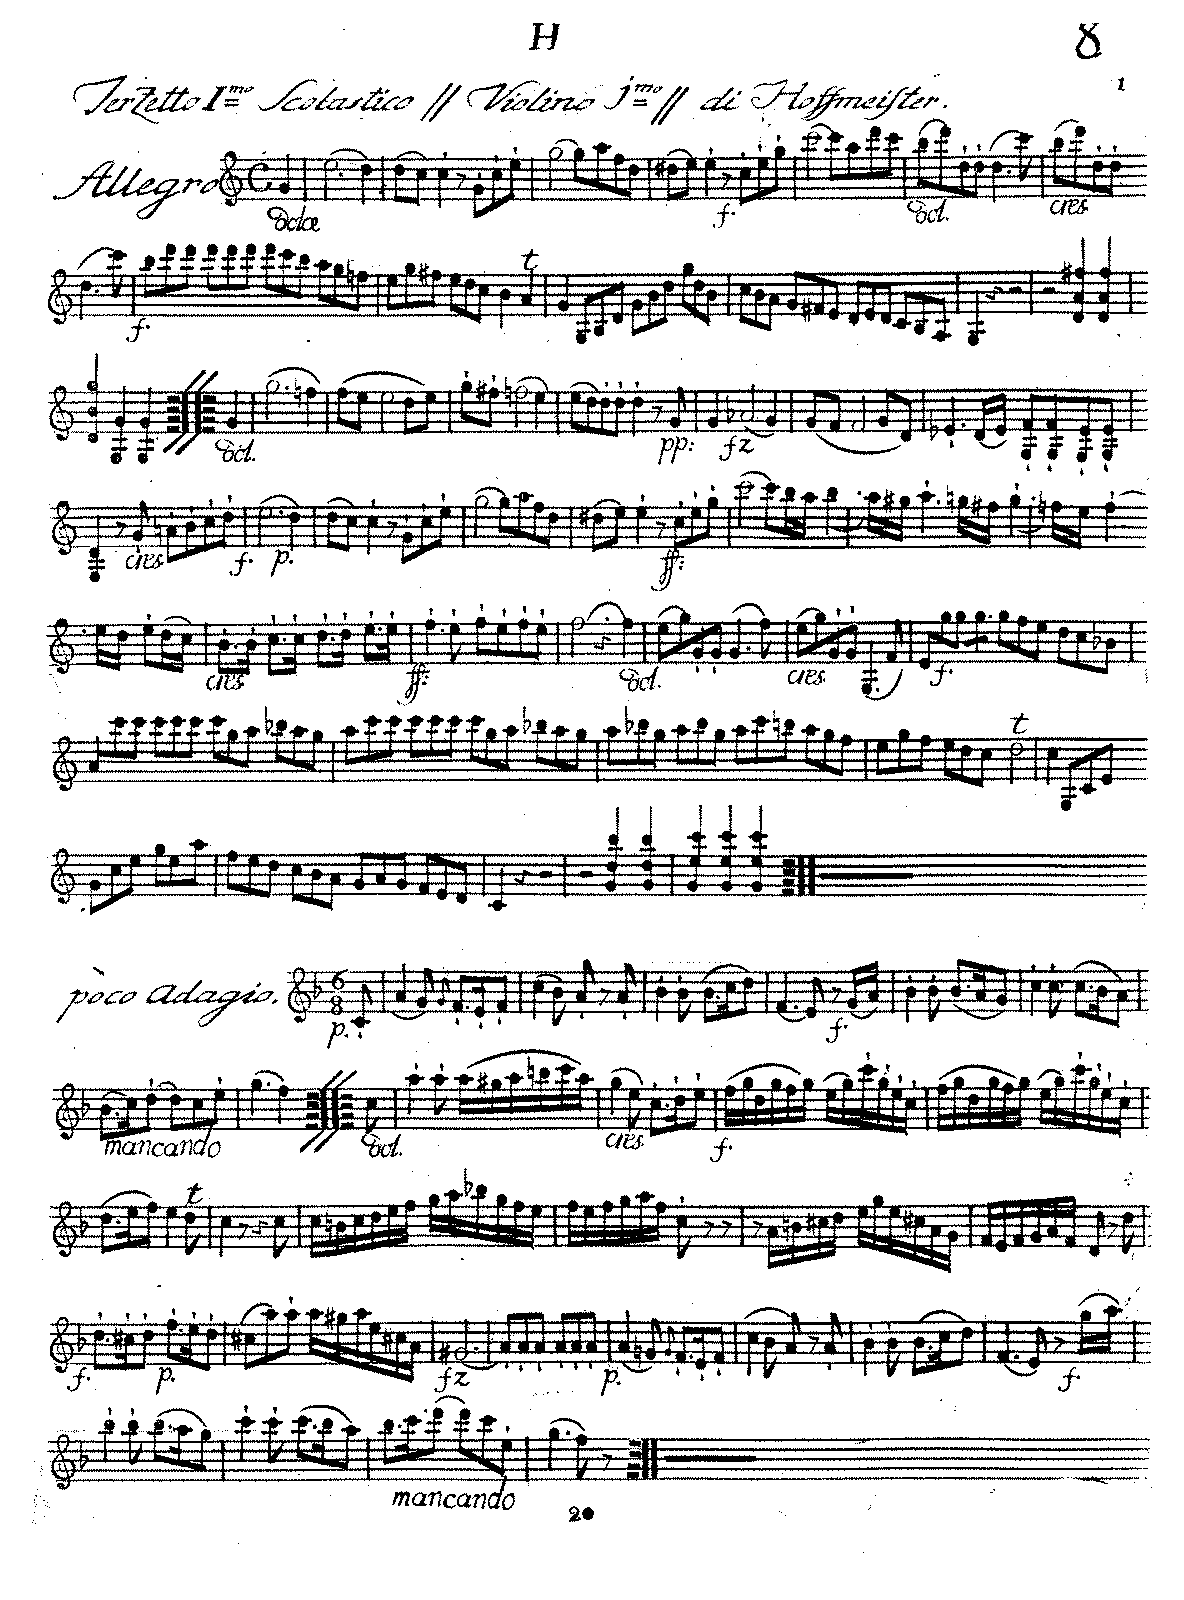 PMLP591093-Hoffmeister - Terzetto 1 for 2 Violins and Cello VL1.pdf